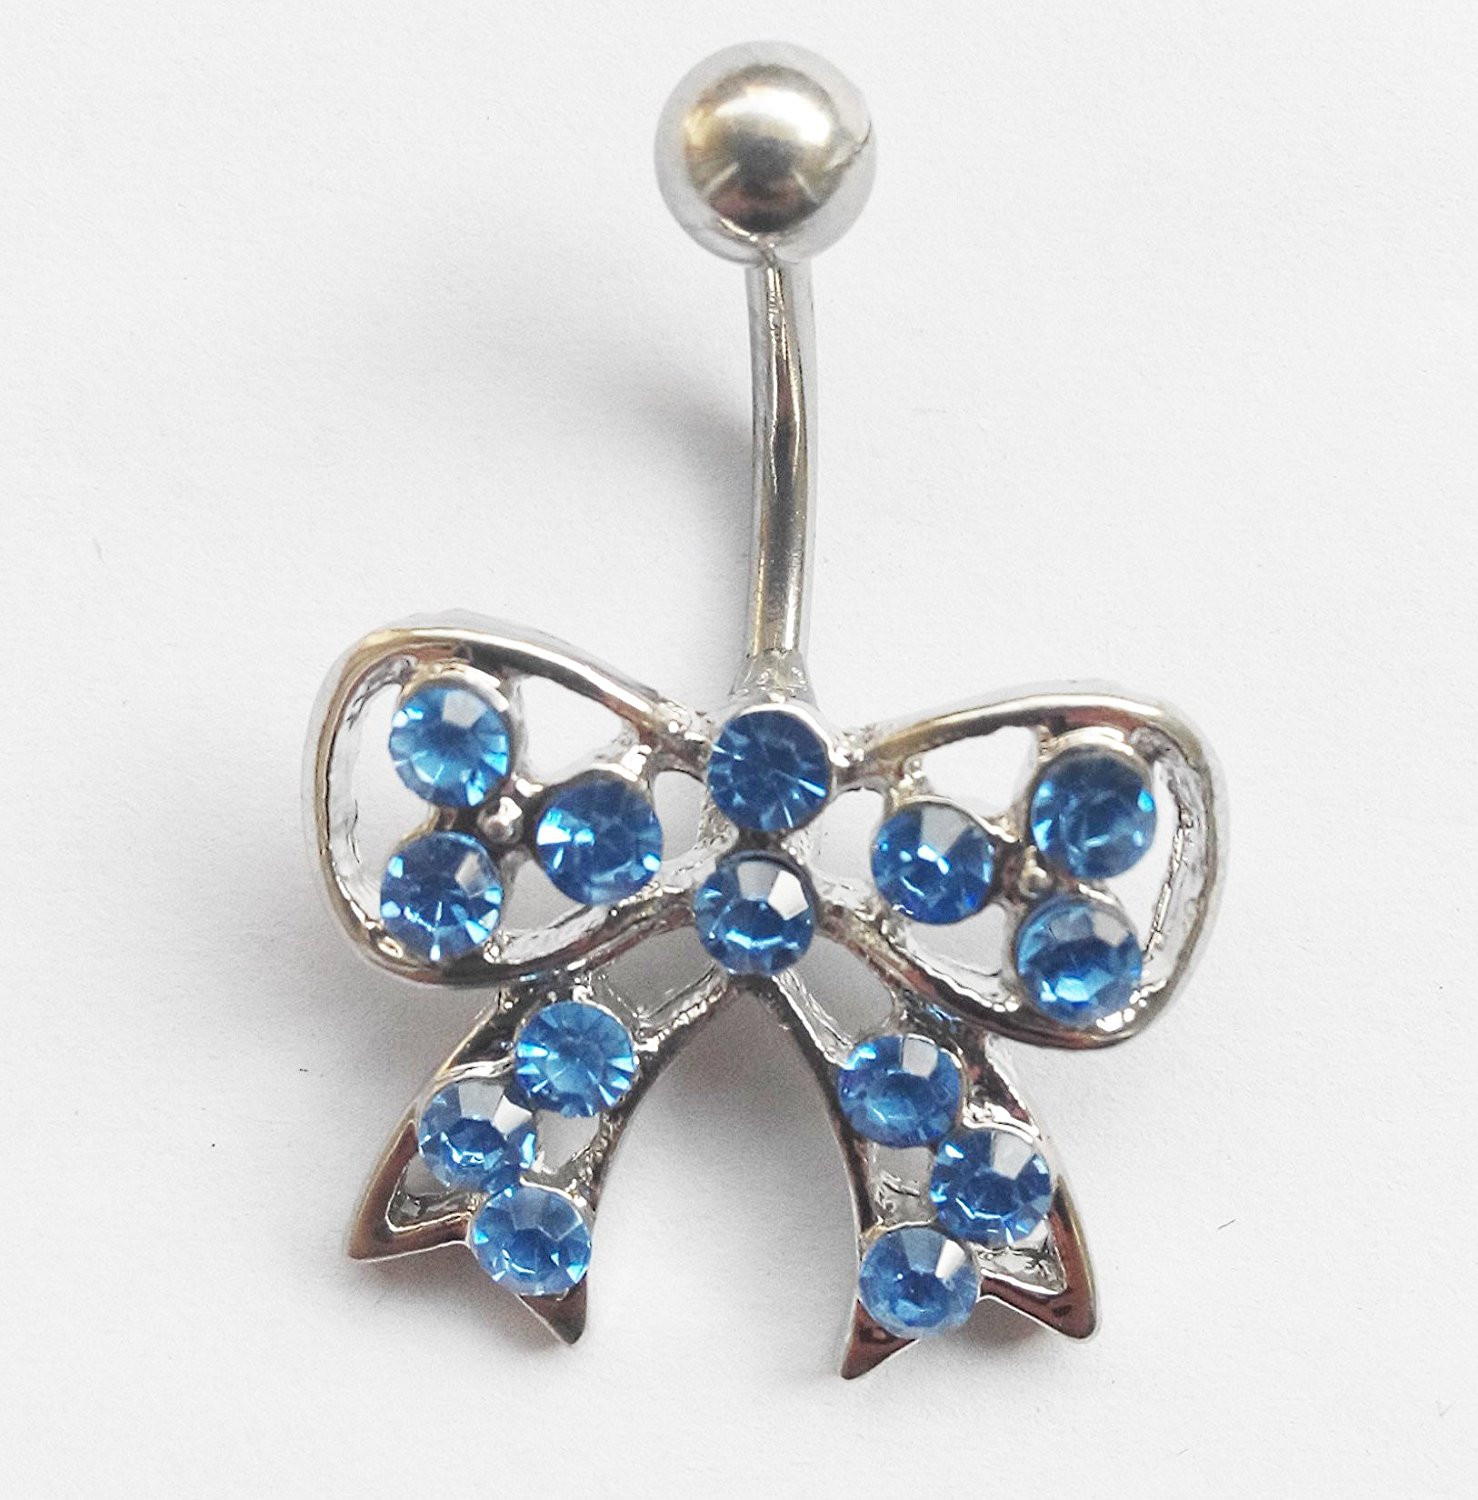 Cheap Diamond Belly Bars Find Diamond Belly Bars Deals On Line At